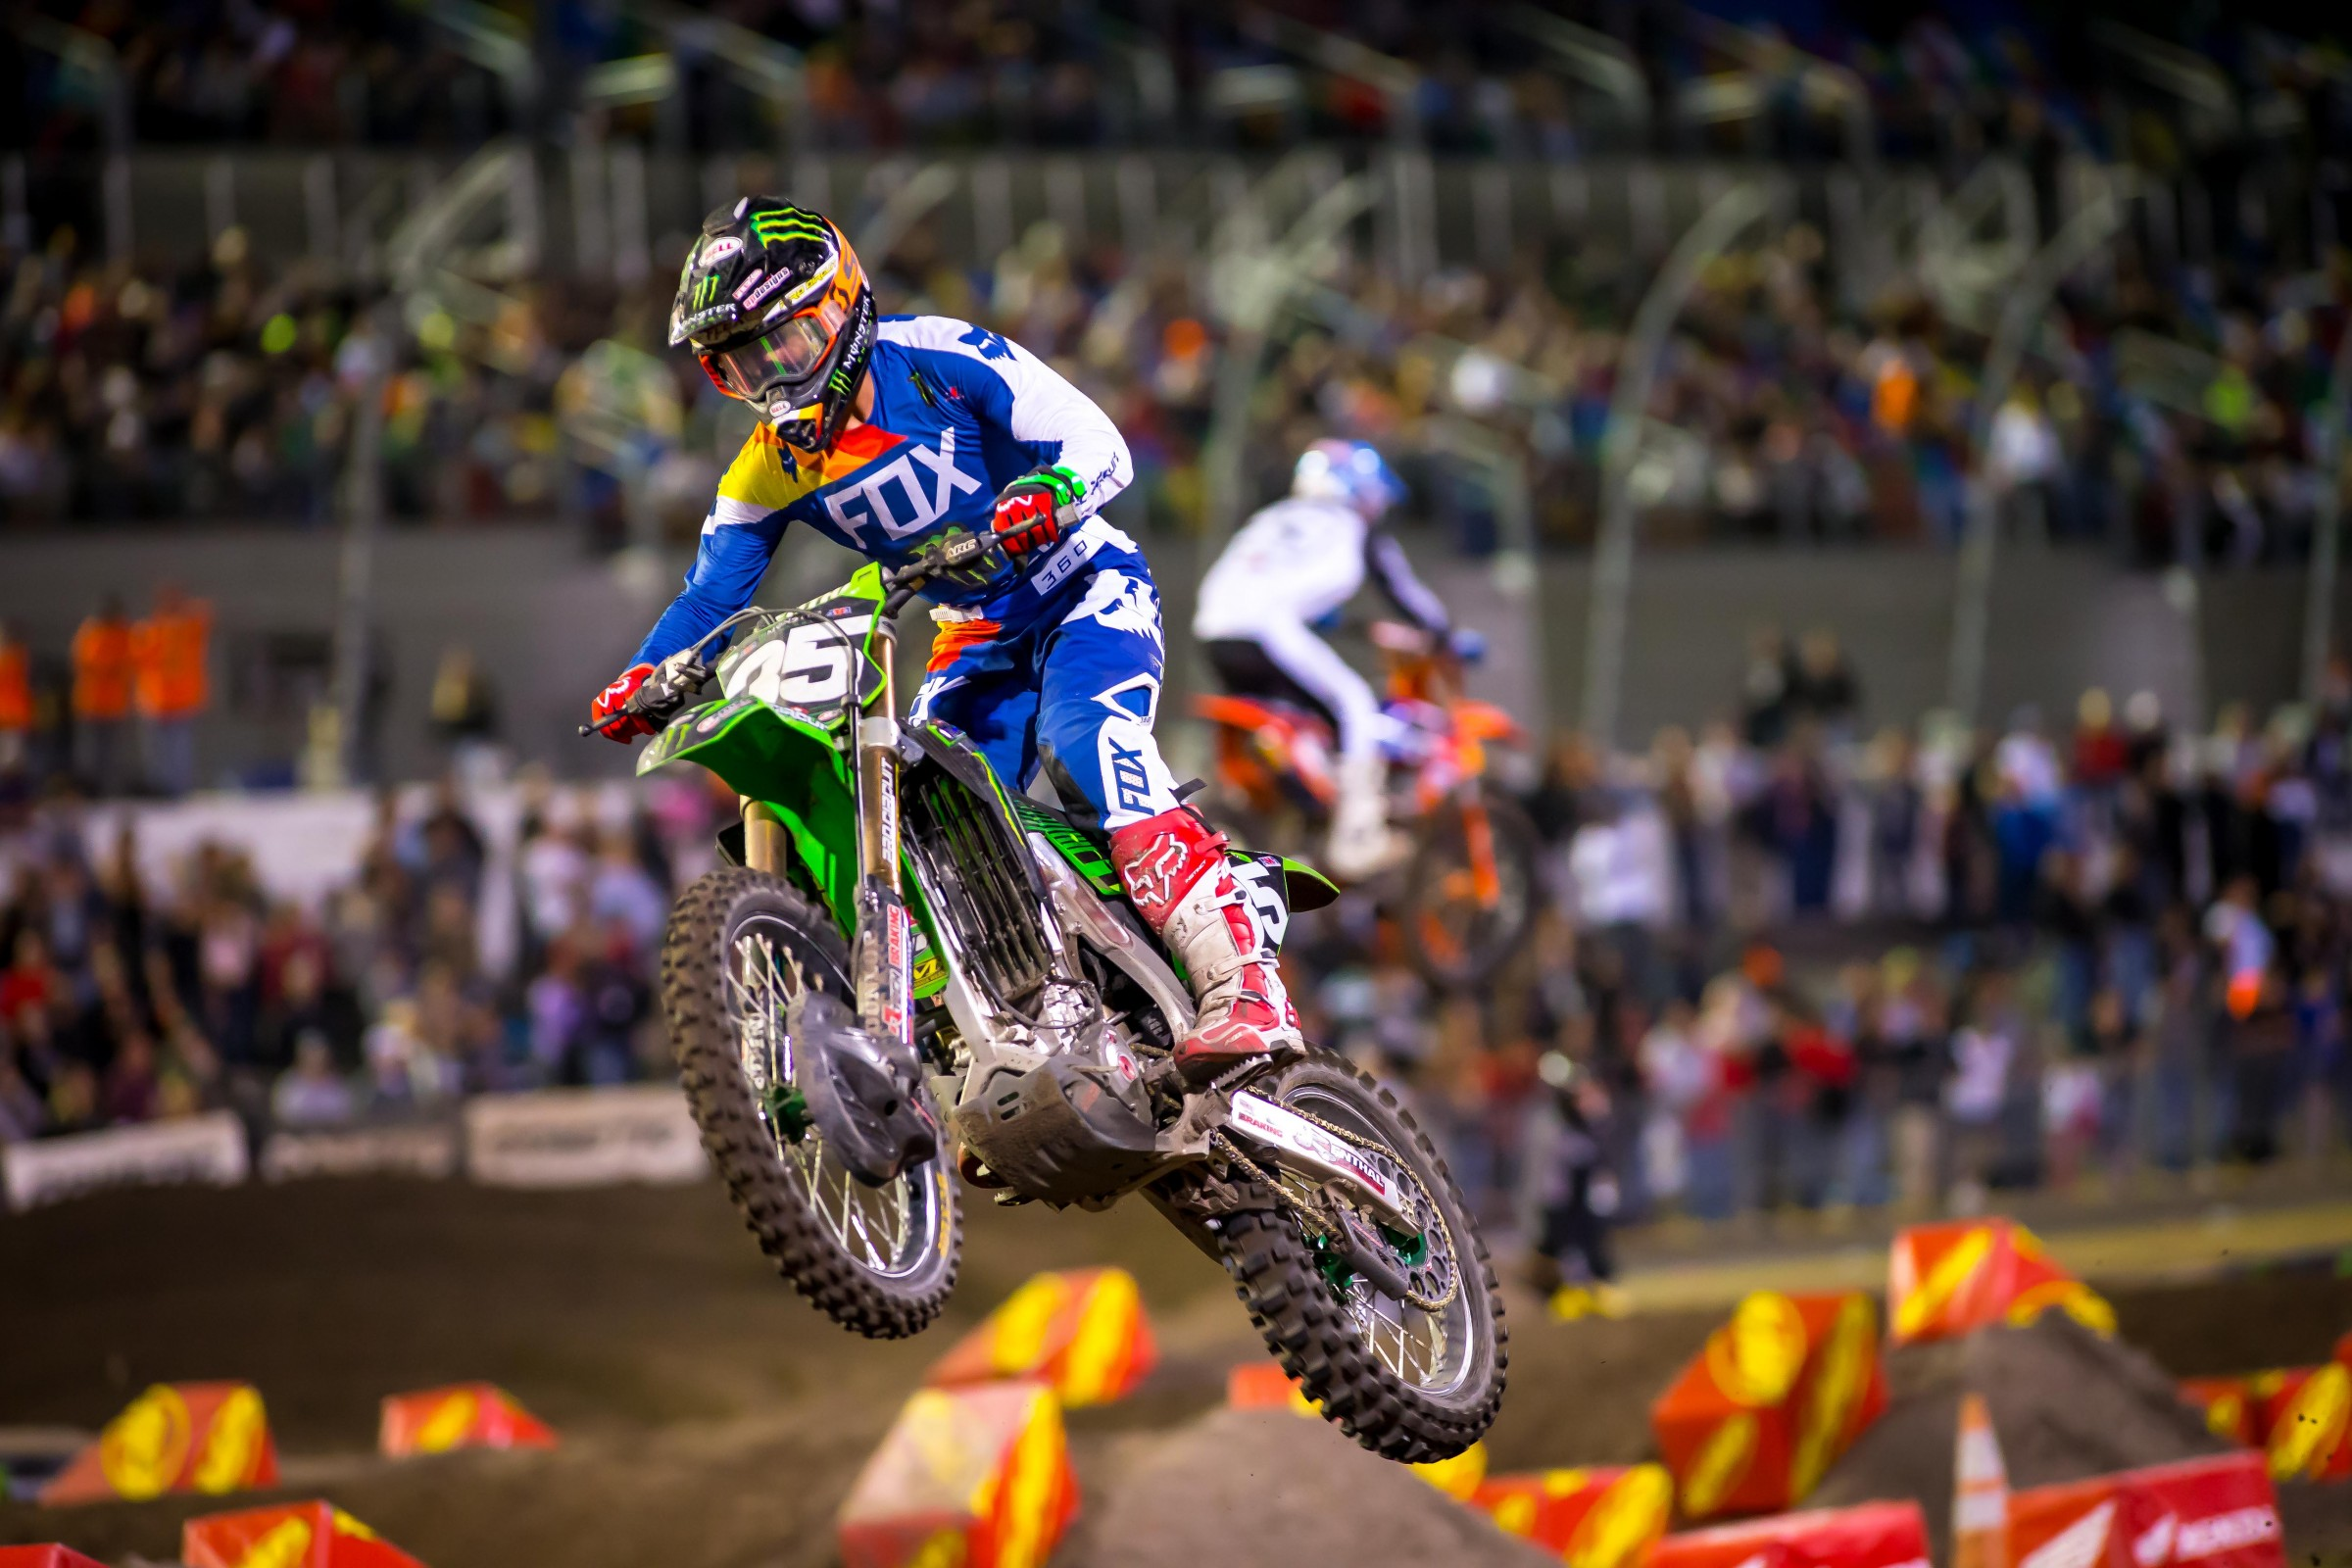 Coming off of two straight wins in Atlanta and Tampa, Forkner finished third in Daytona.